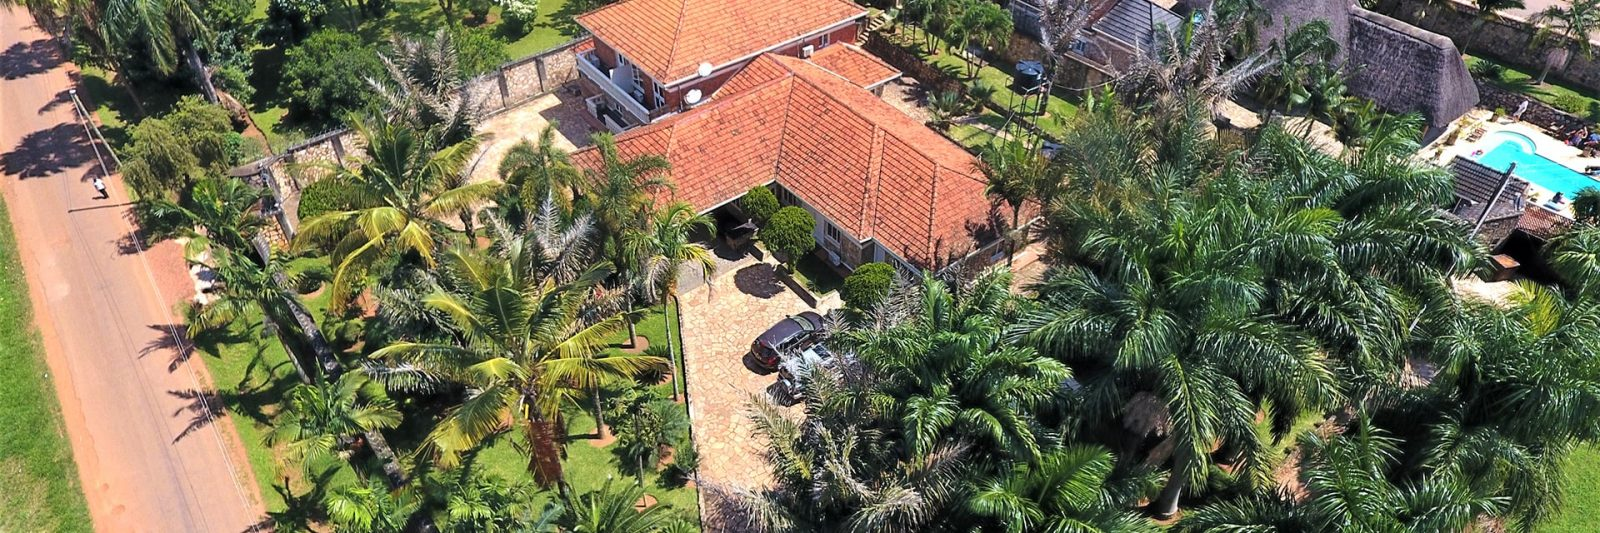 Aerial view of entebbe palm hotel